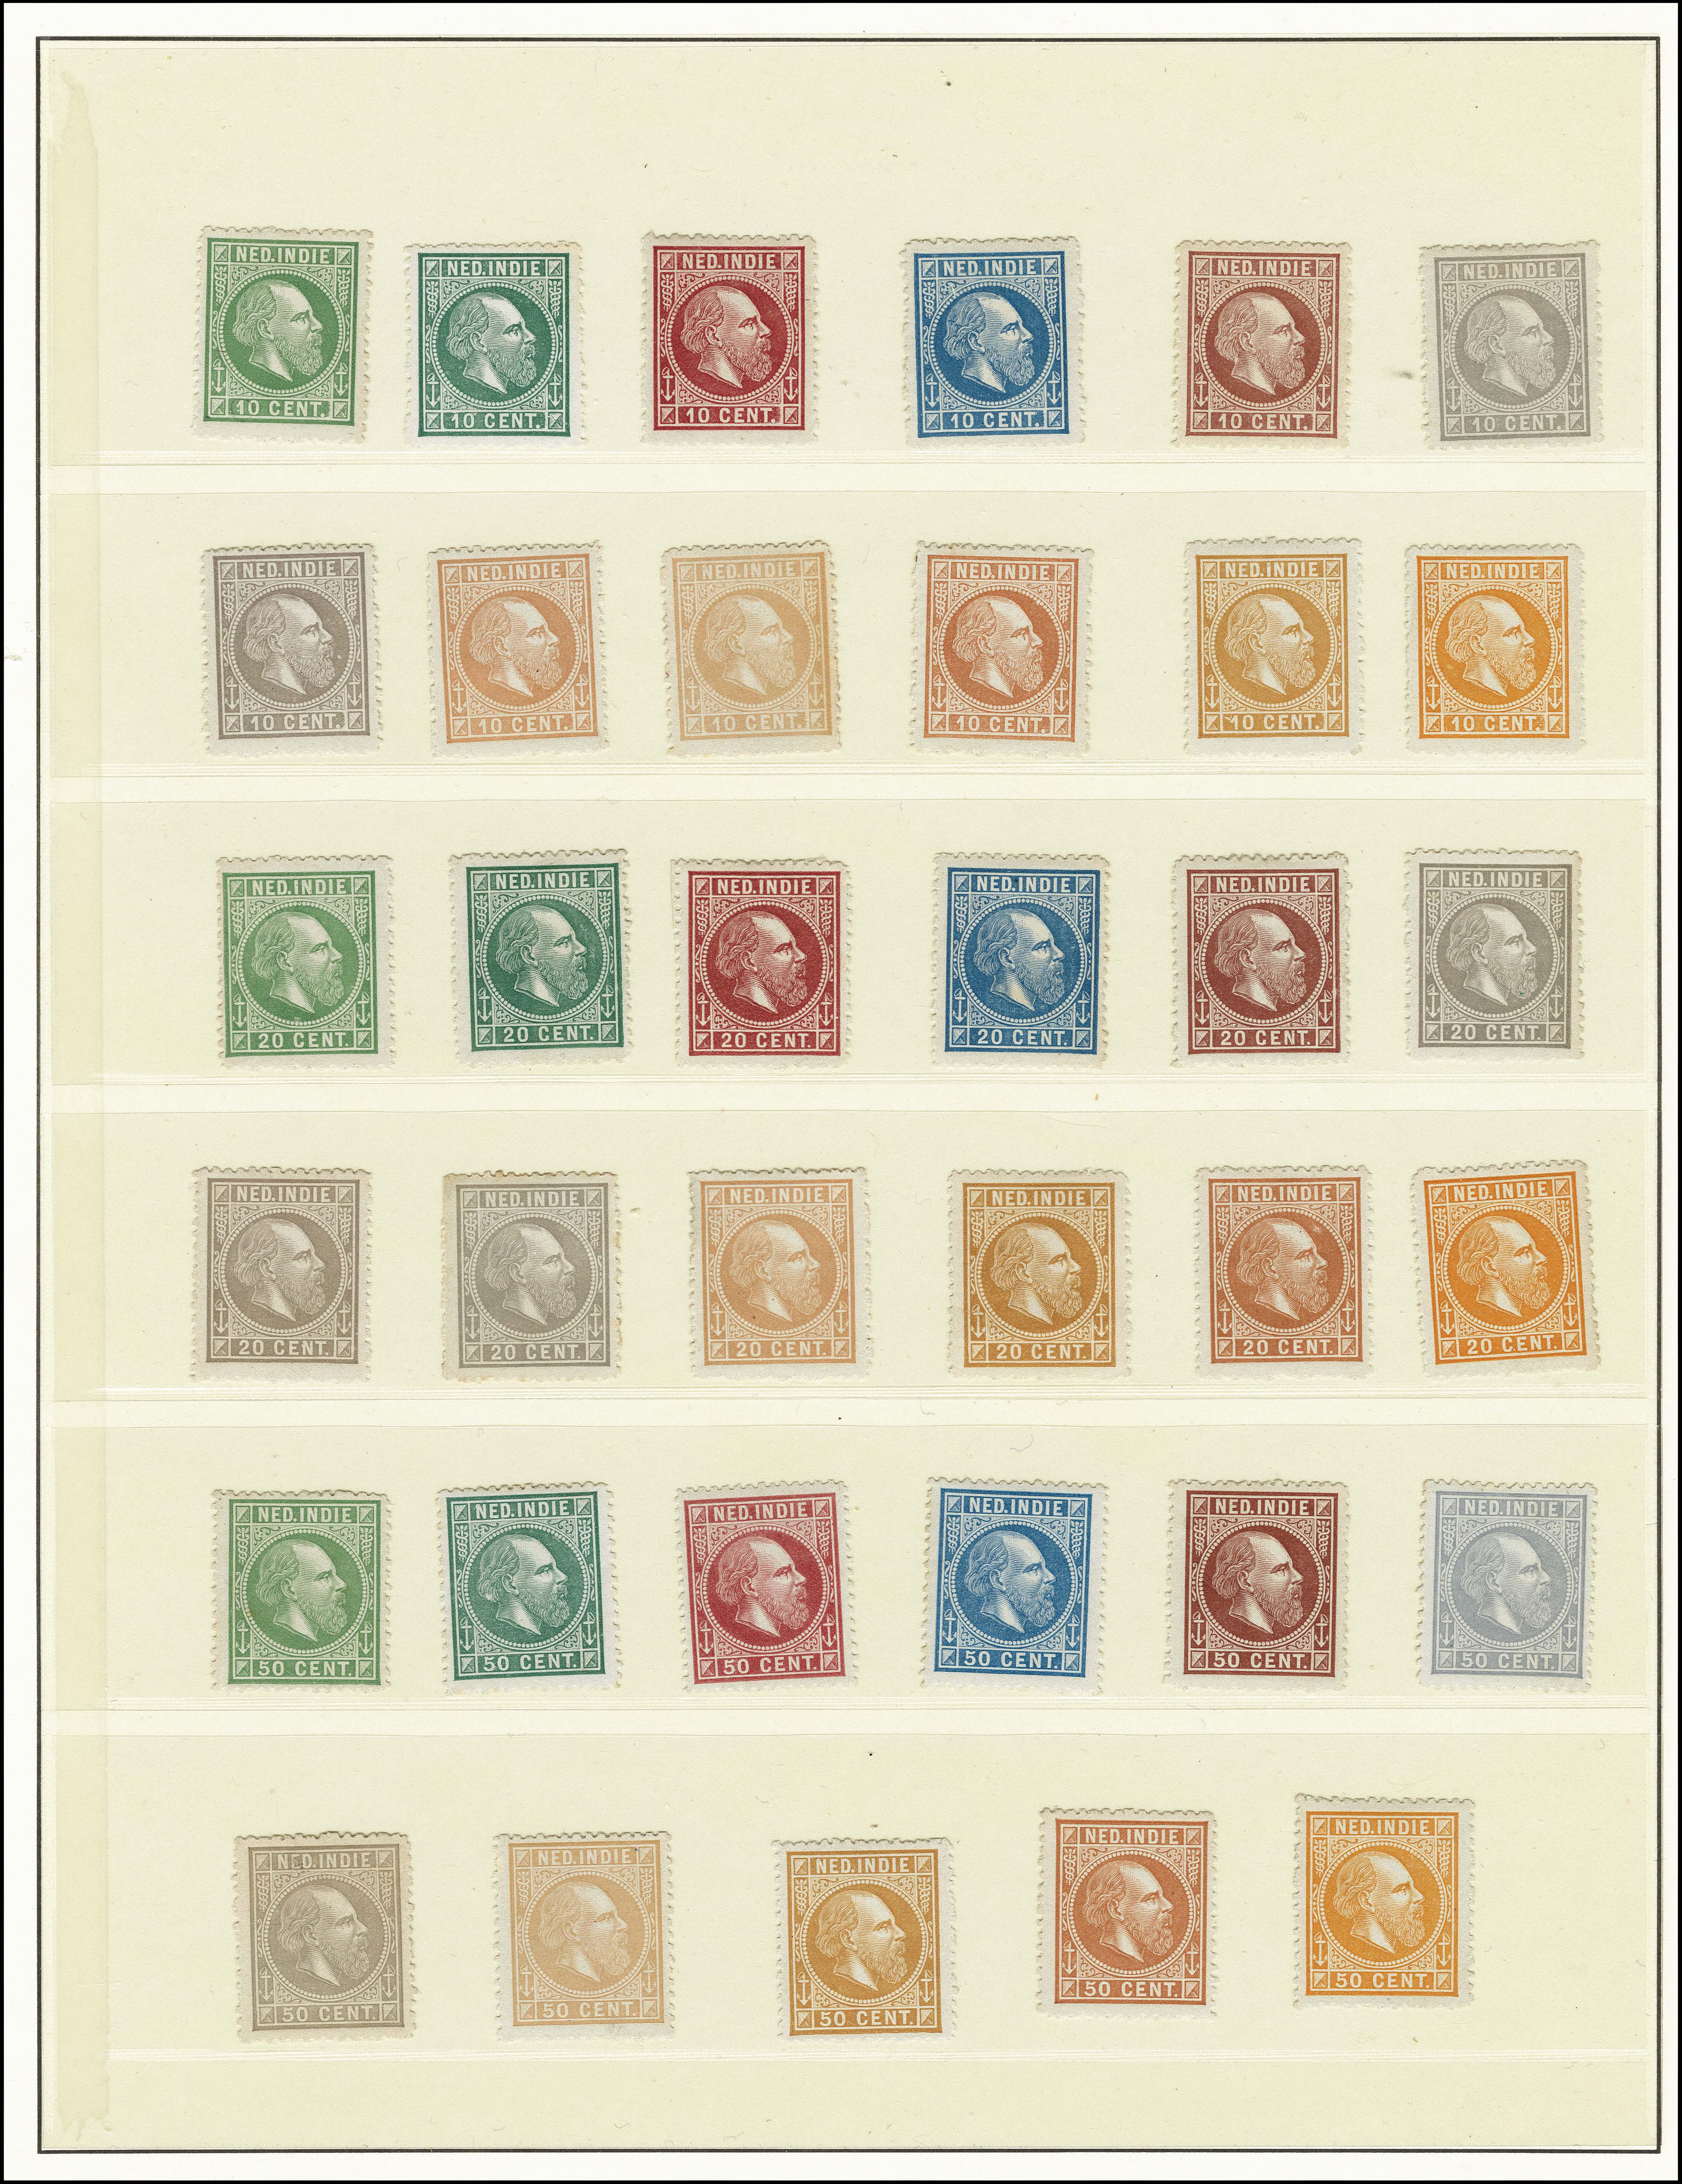 Lot 3307 - Netherlands and former colonies Netherlands Indies -  Corinphila Veilingen Auction 250-253 - Day 4 - Proofs of Netherlands former colonies